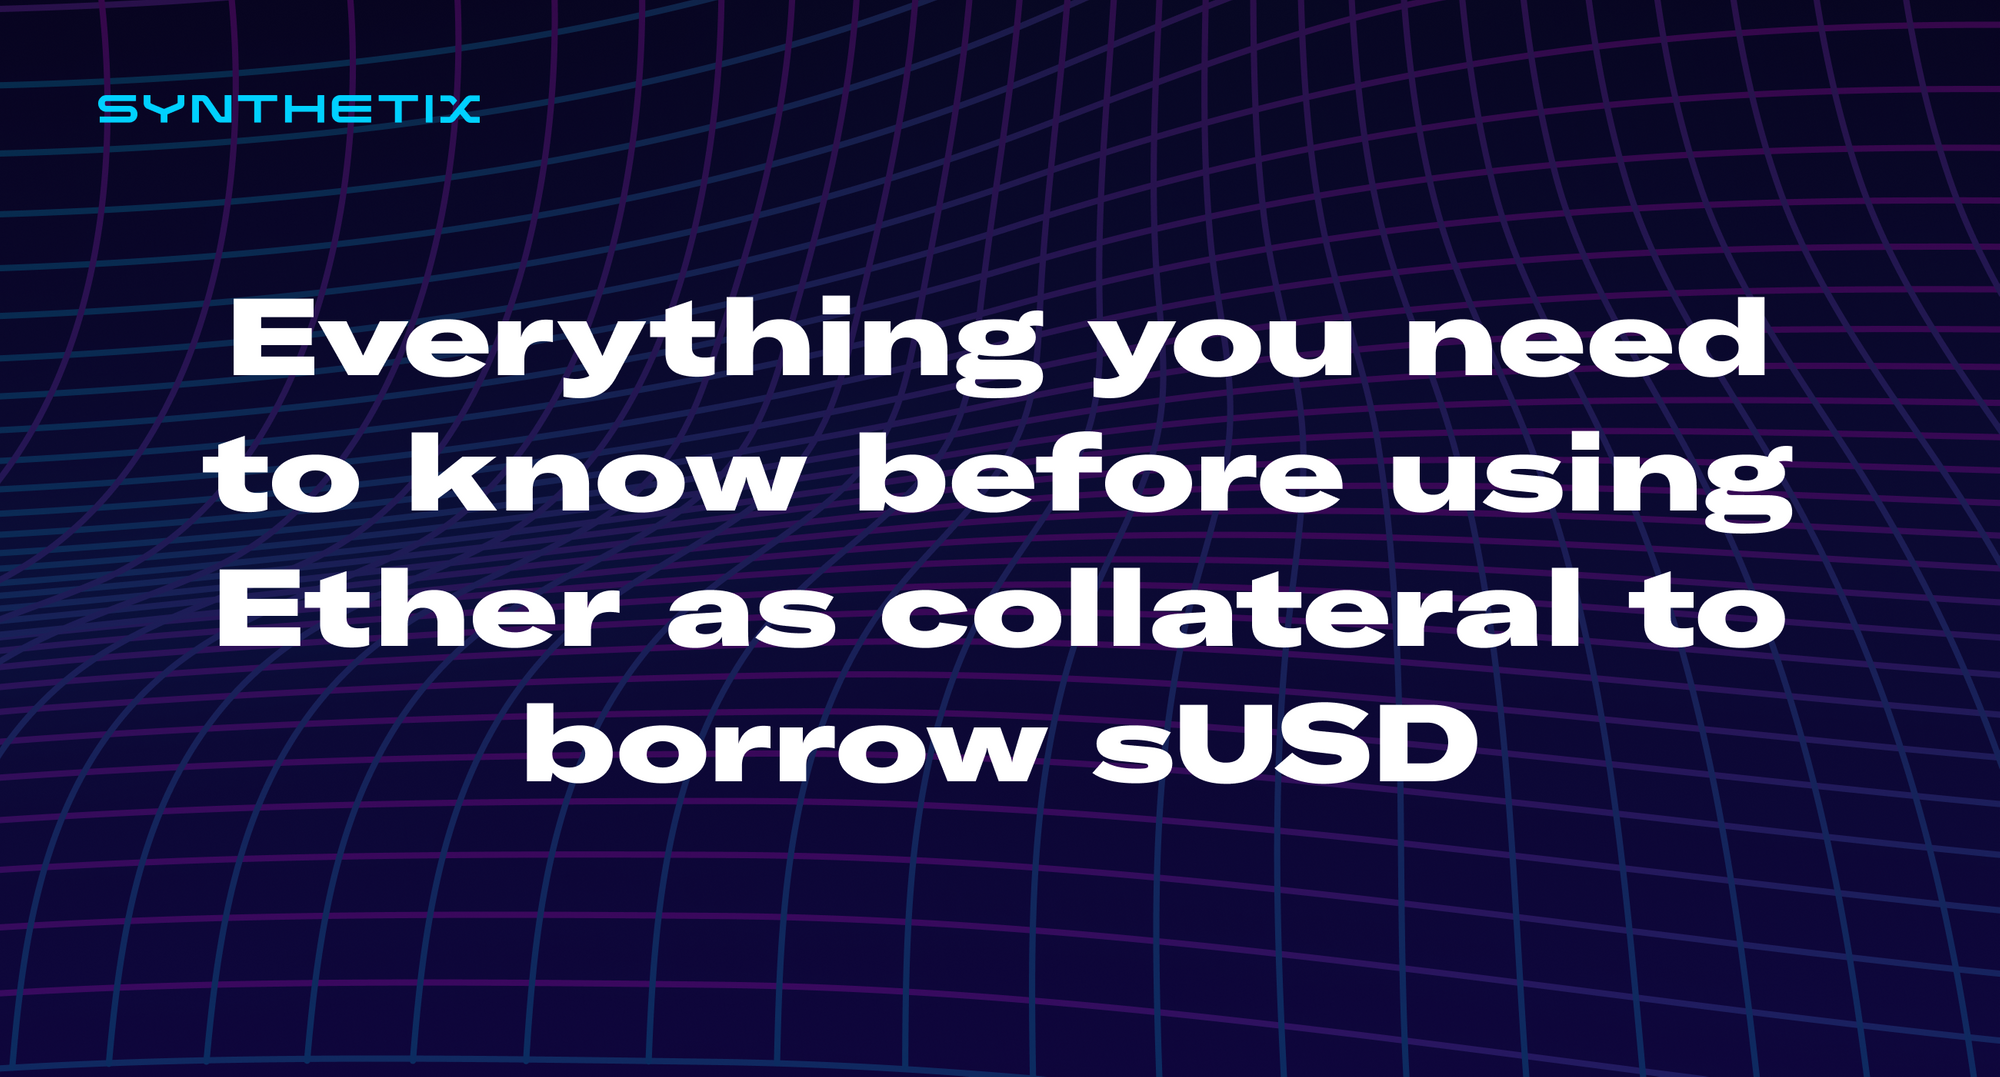 Everything you need to know before using Ether as collateral to borrow sUSD